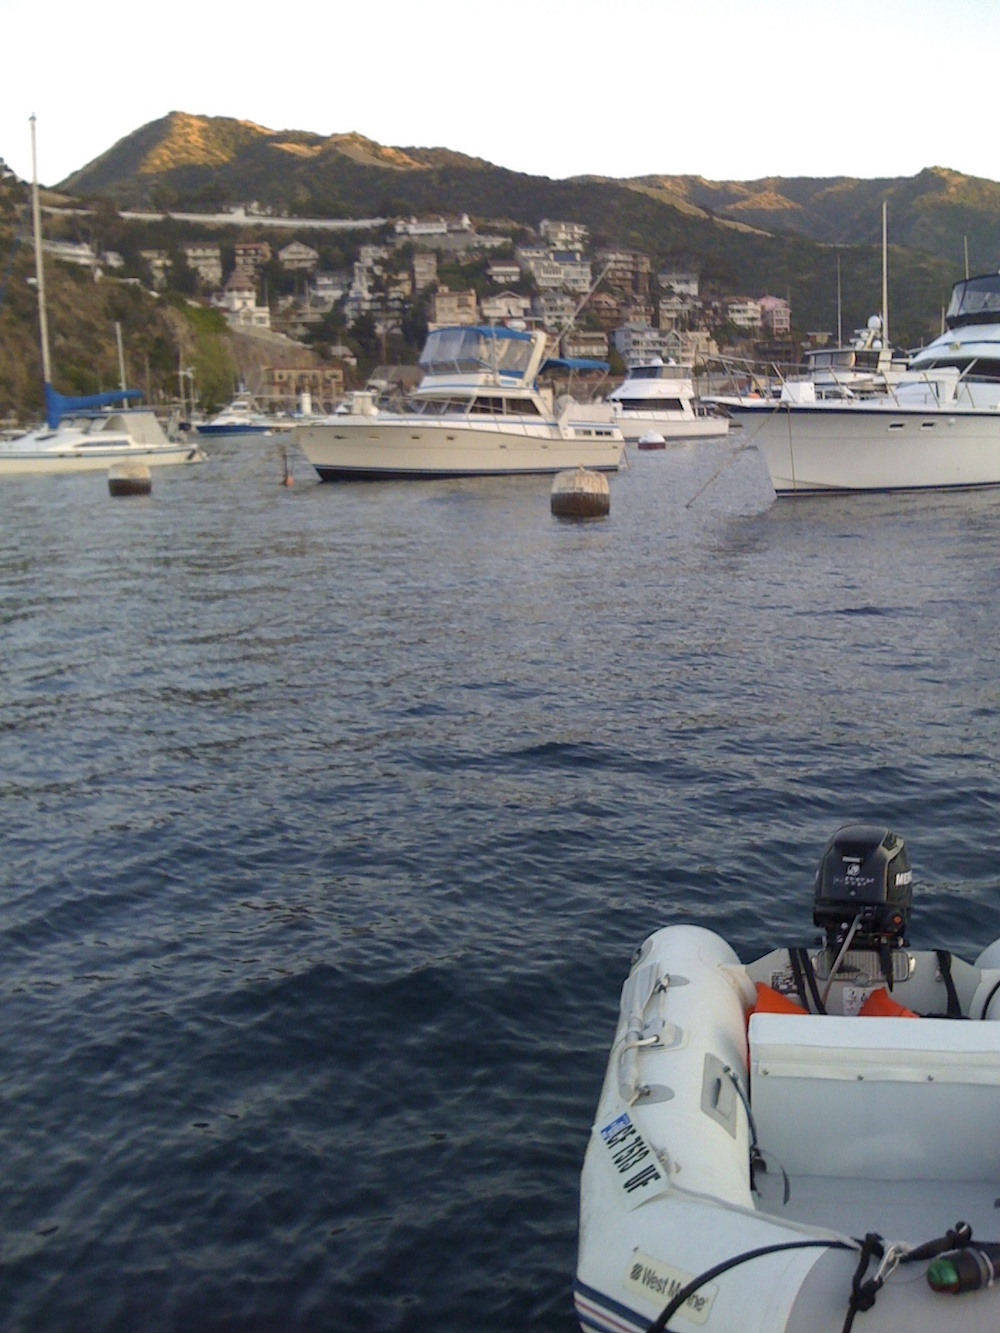 At Catalina harbour.